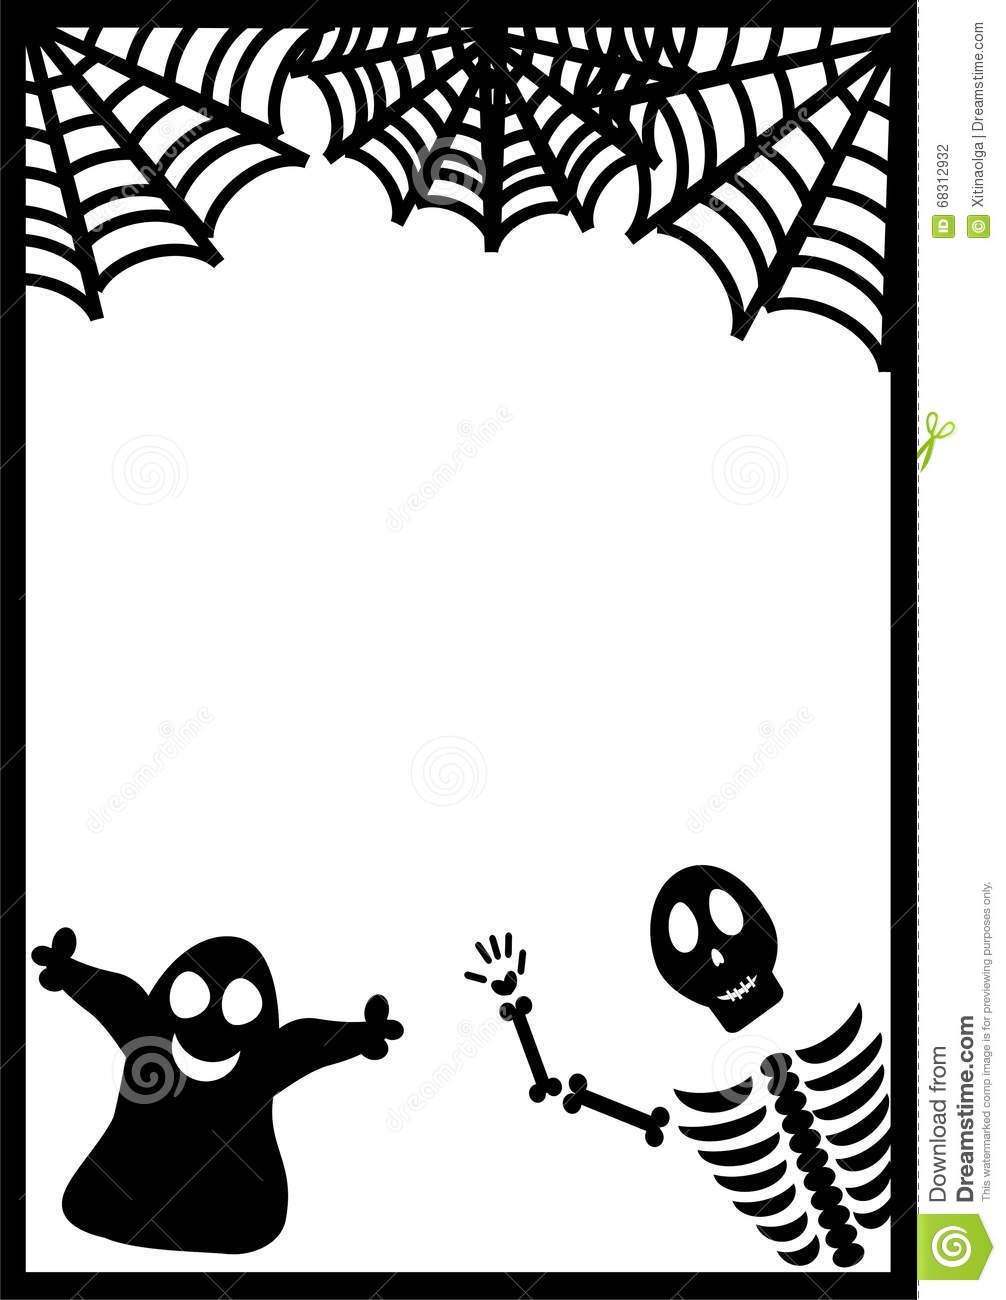 Cartoon Of A Candle Royalty Free Vector Clipart furthermore F in addition Latest Cb additionally  as well Greenwood Cemetery. on black ghost border